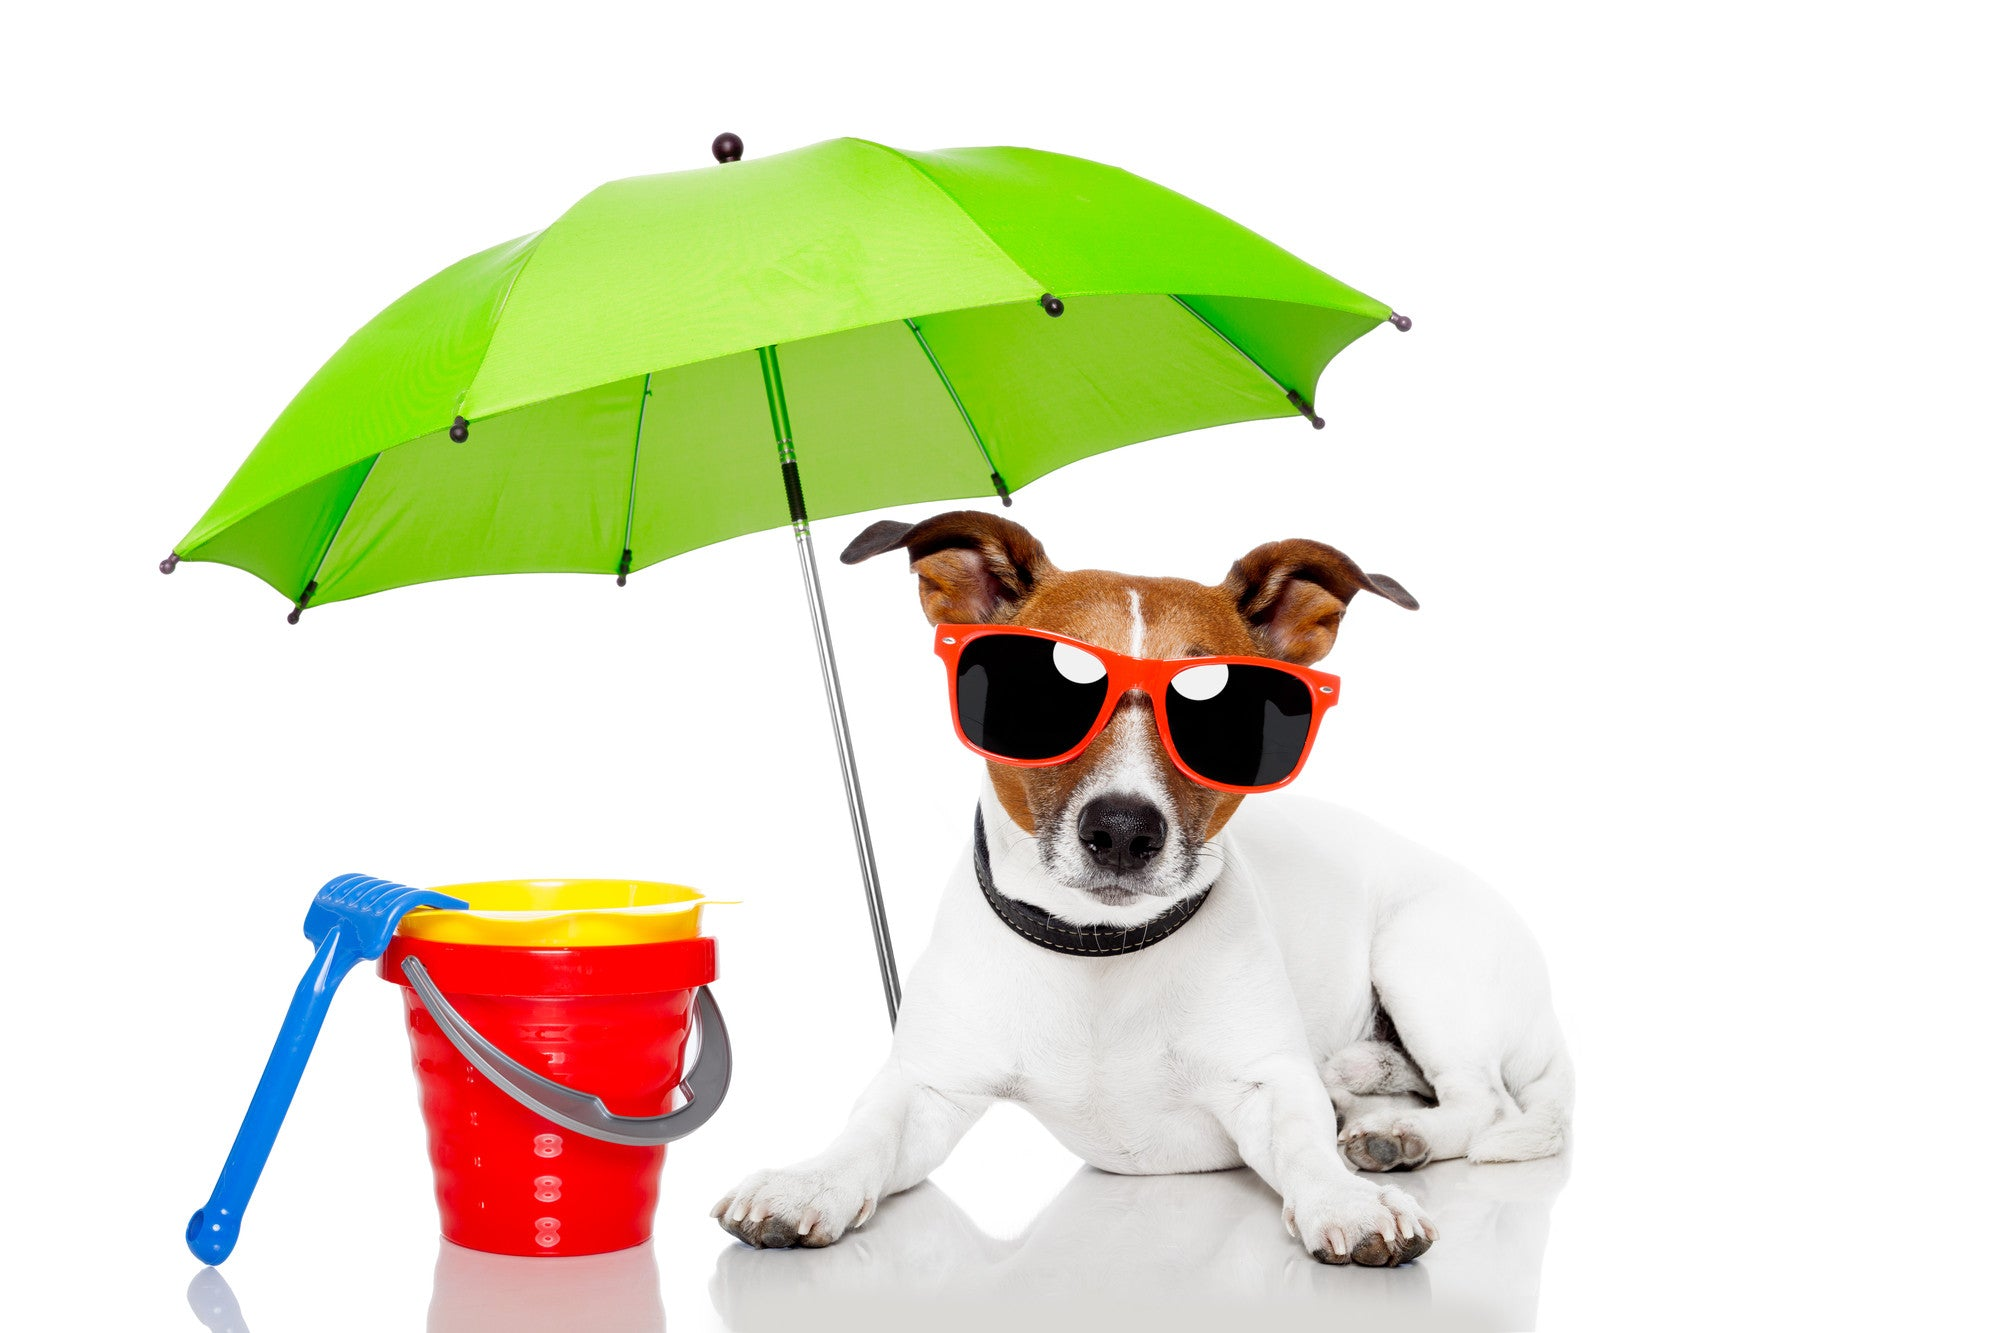 Keeping your dog cool in the scorching summer heat